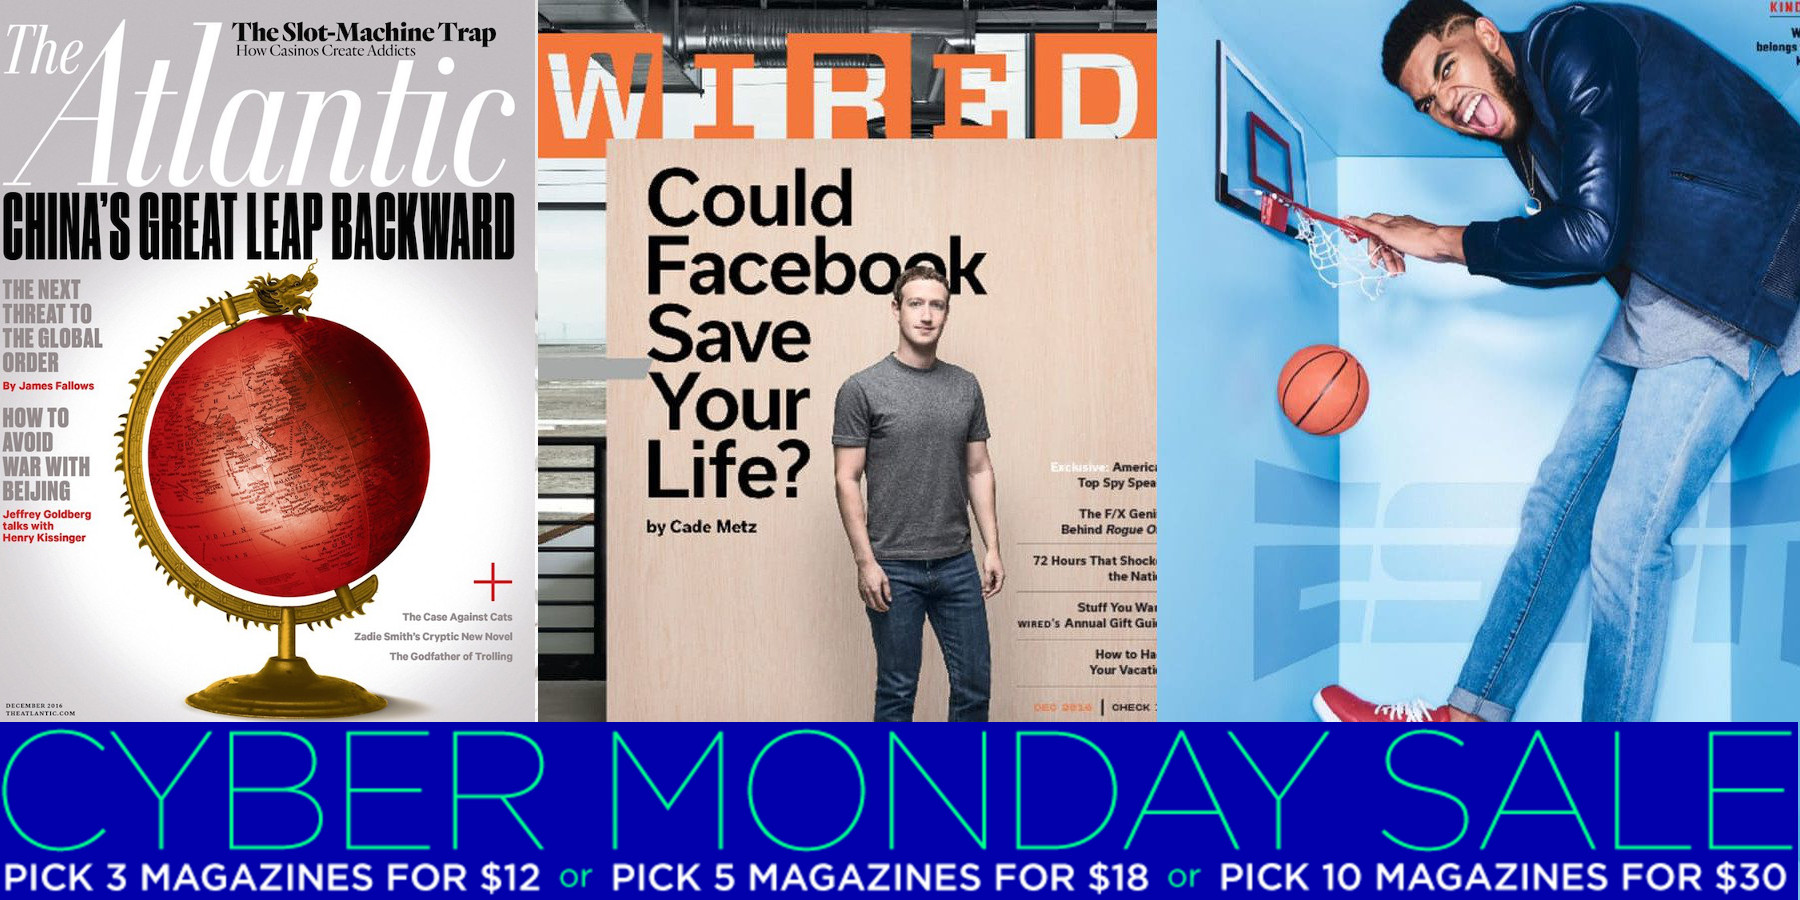 cyber-monday-magazine-sale-01-wired-sale-01